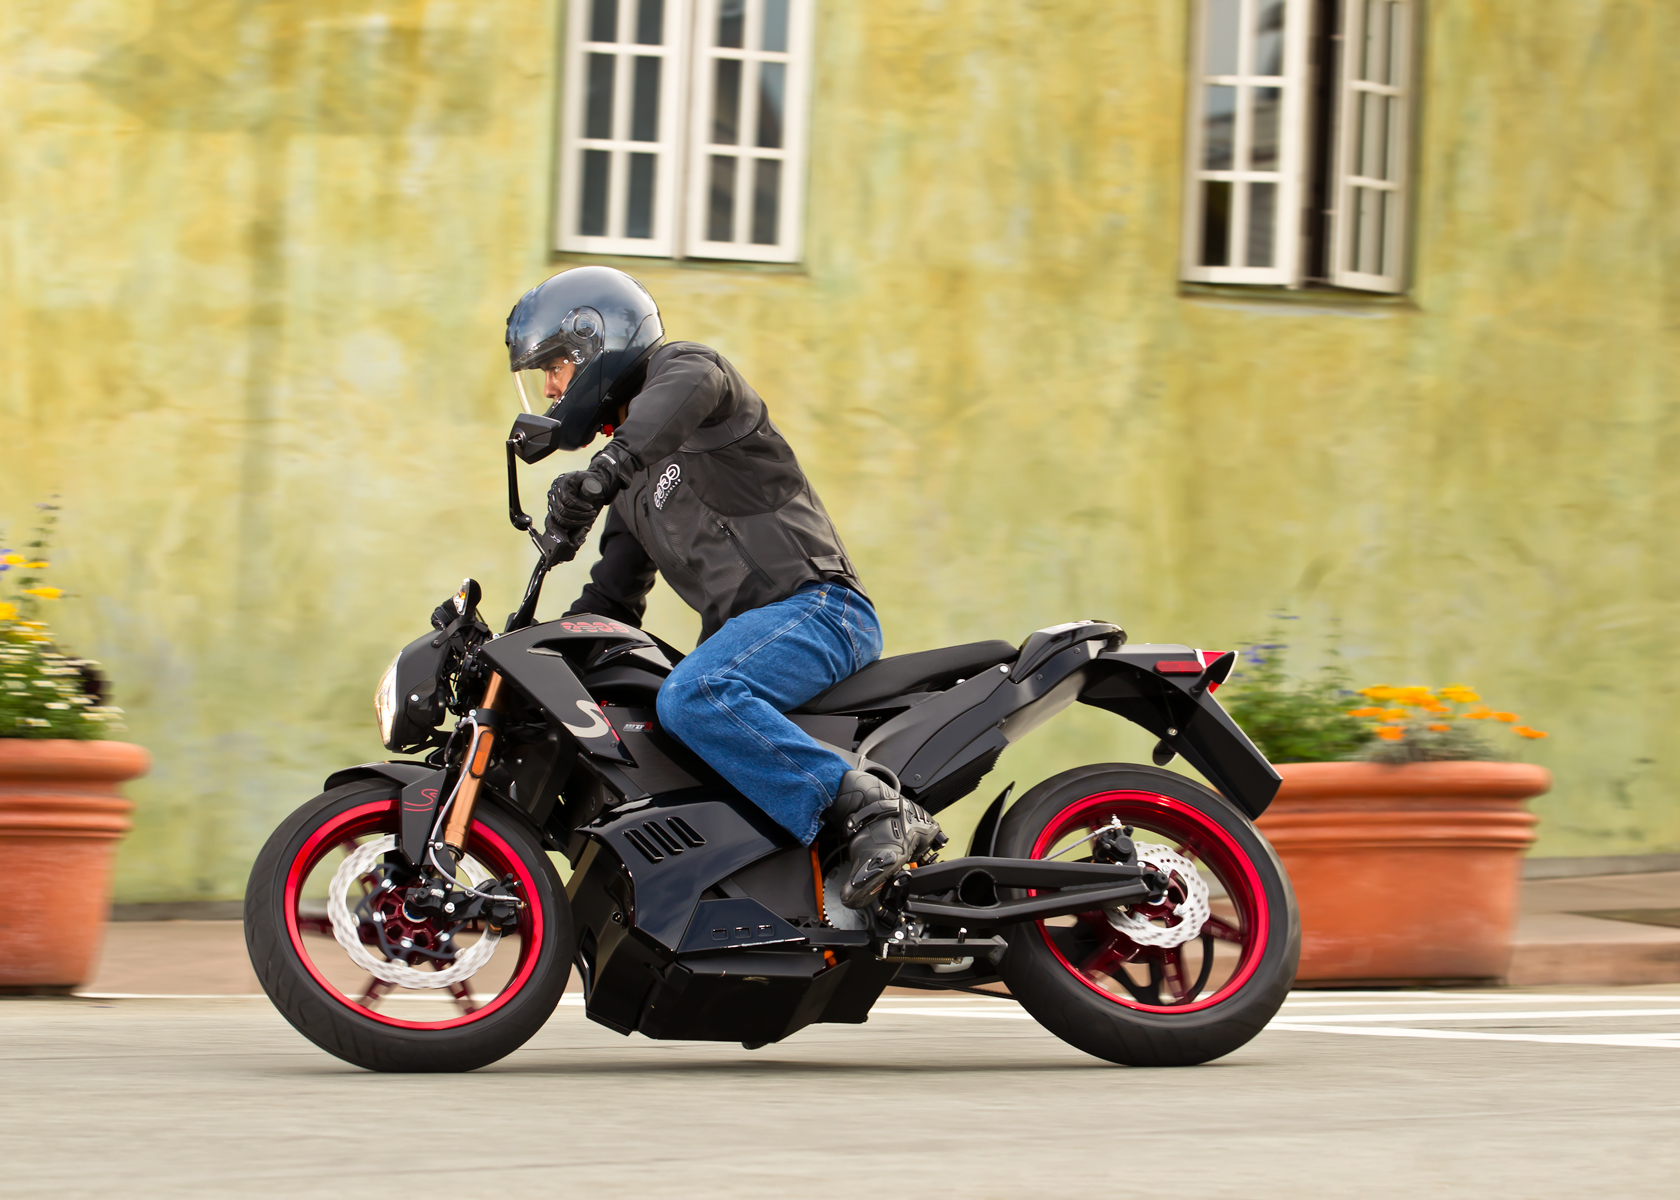 2012 Zero S Electric Motorcycle: Capitola Village